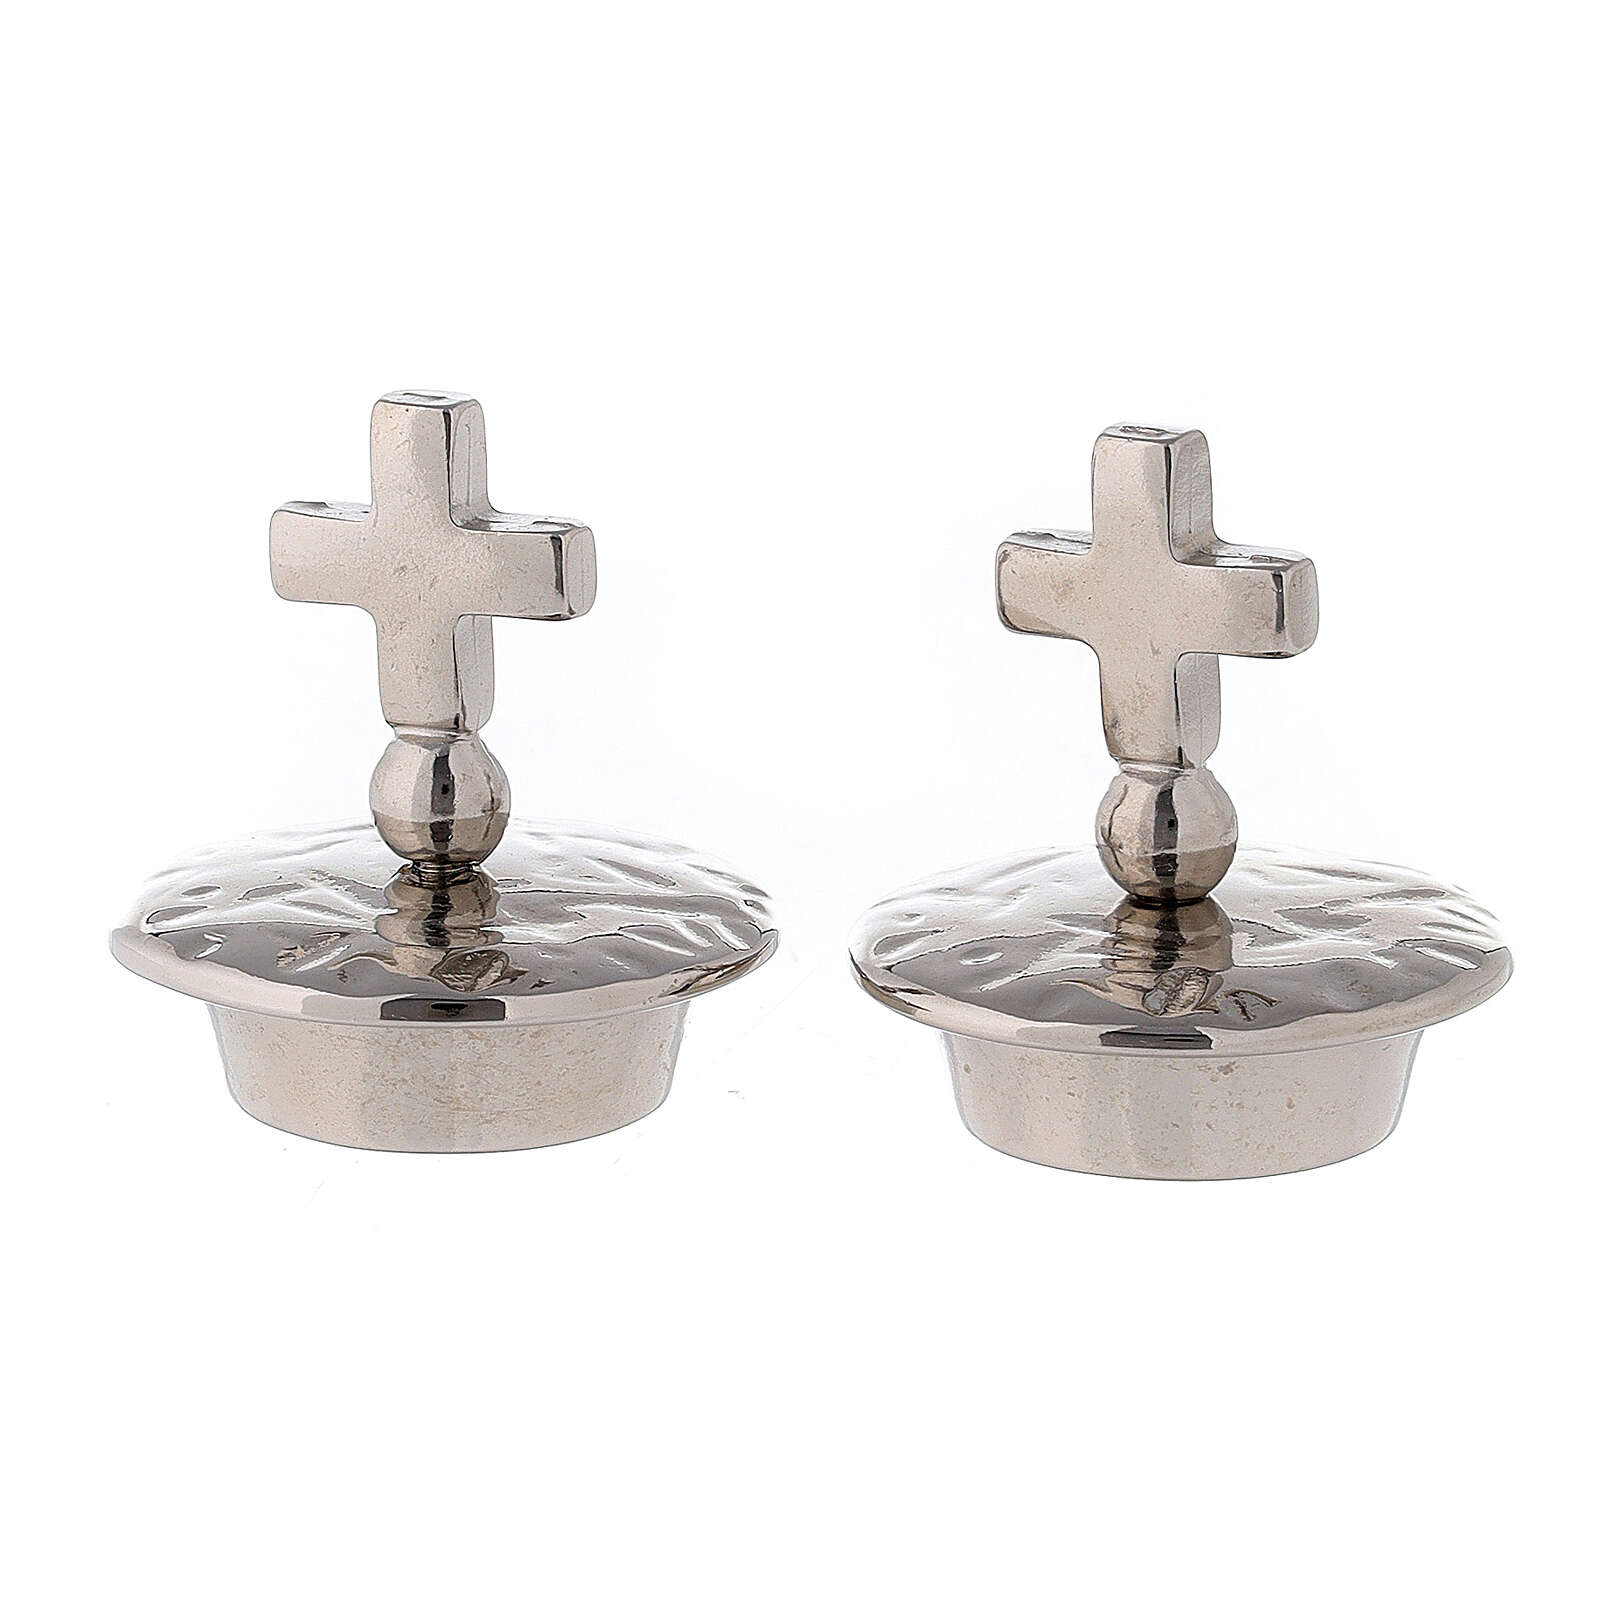 Lids simple cross silver-plated brass for Venise-Rome cruets 4